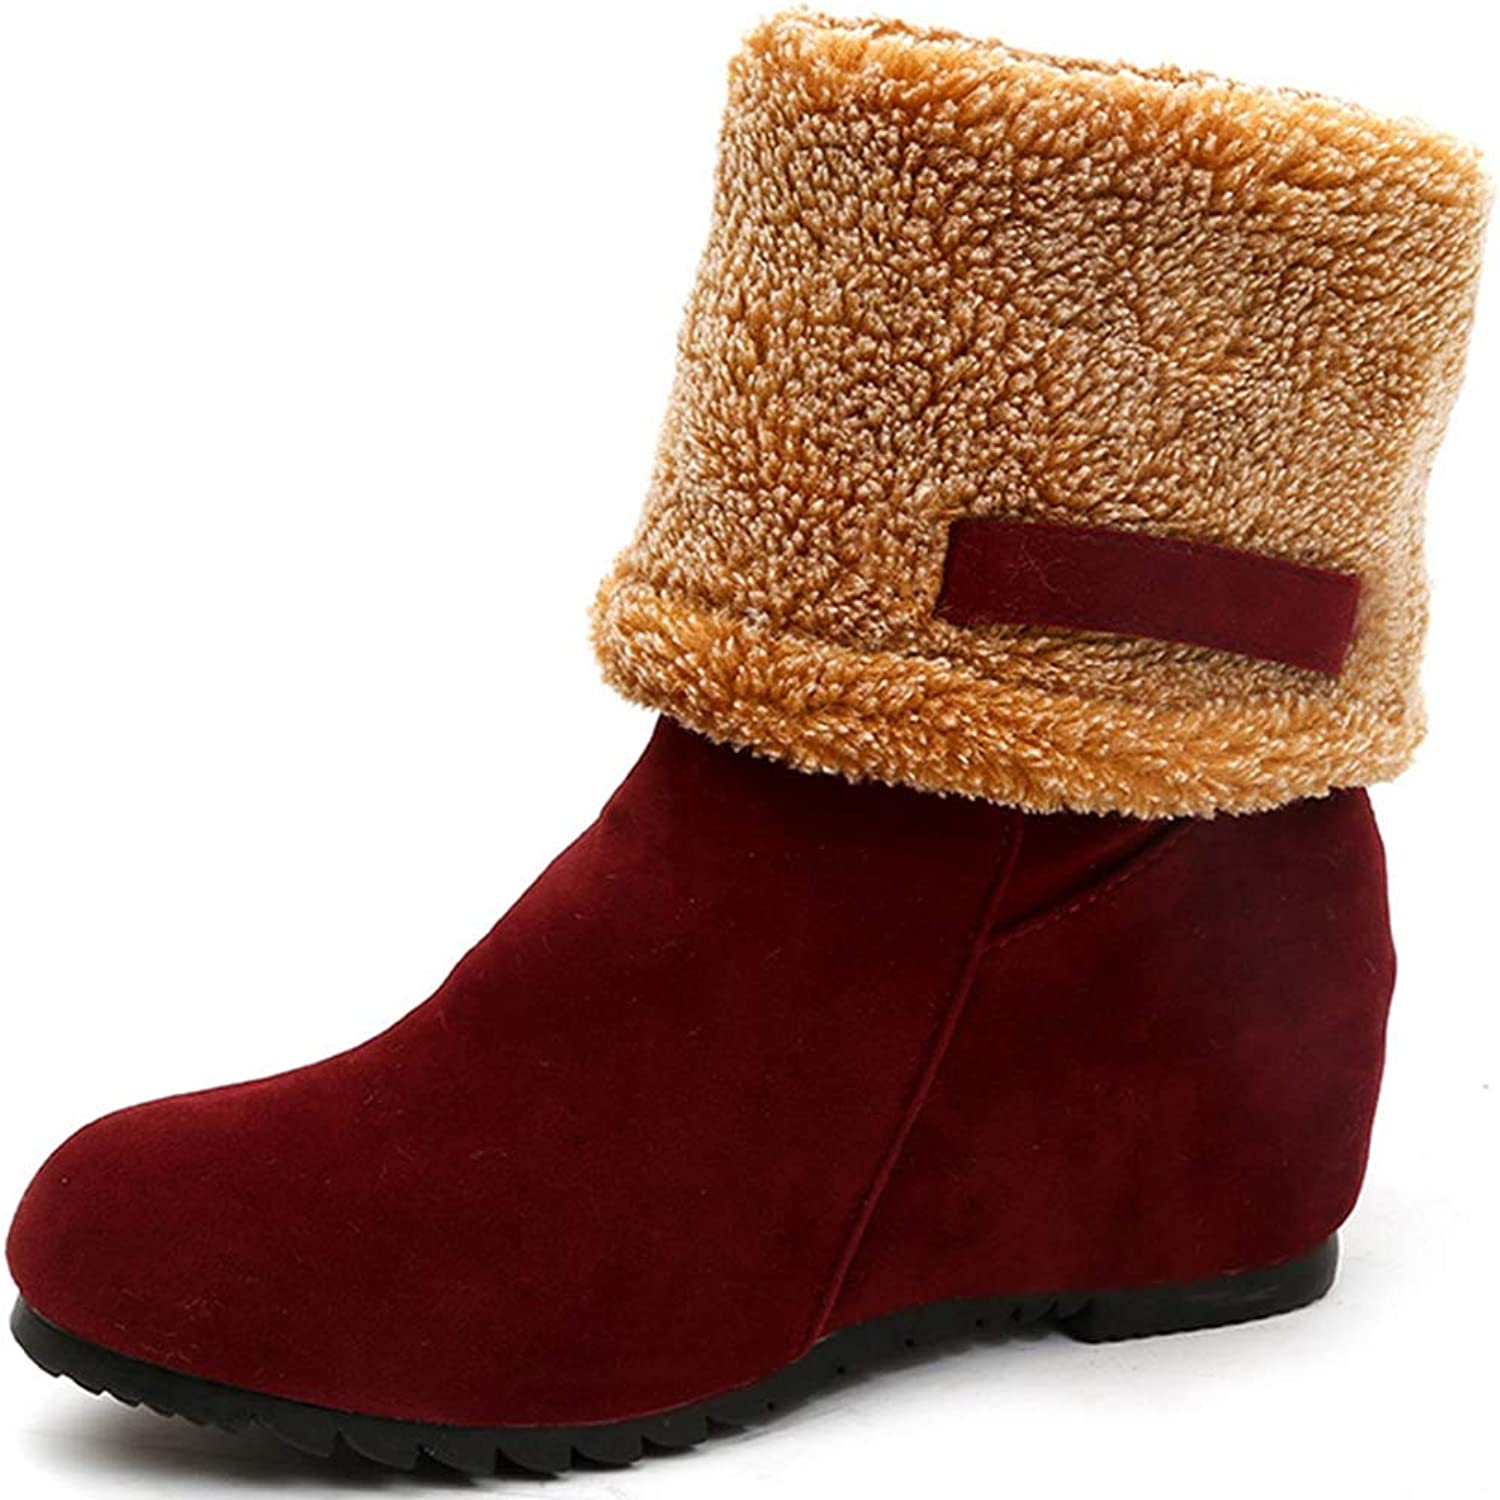 Hoxekle Women Winter Slip-On Faux Suede Height Increasing Plush Platform Ankle Boots Ladies Snow Boots Flat shoes